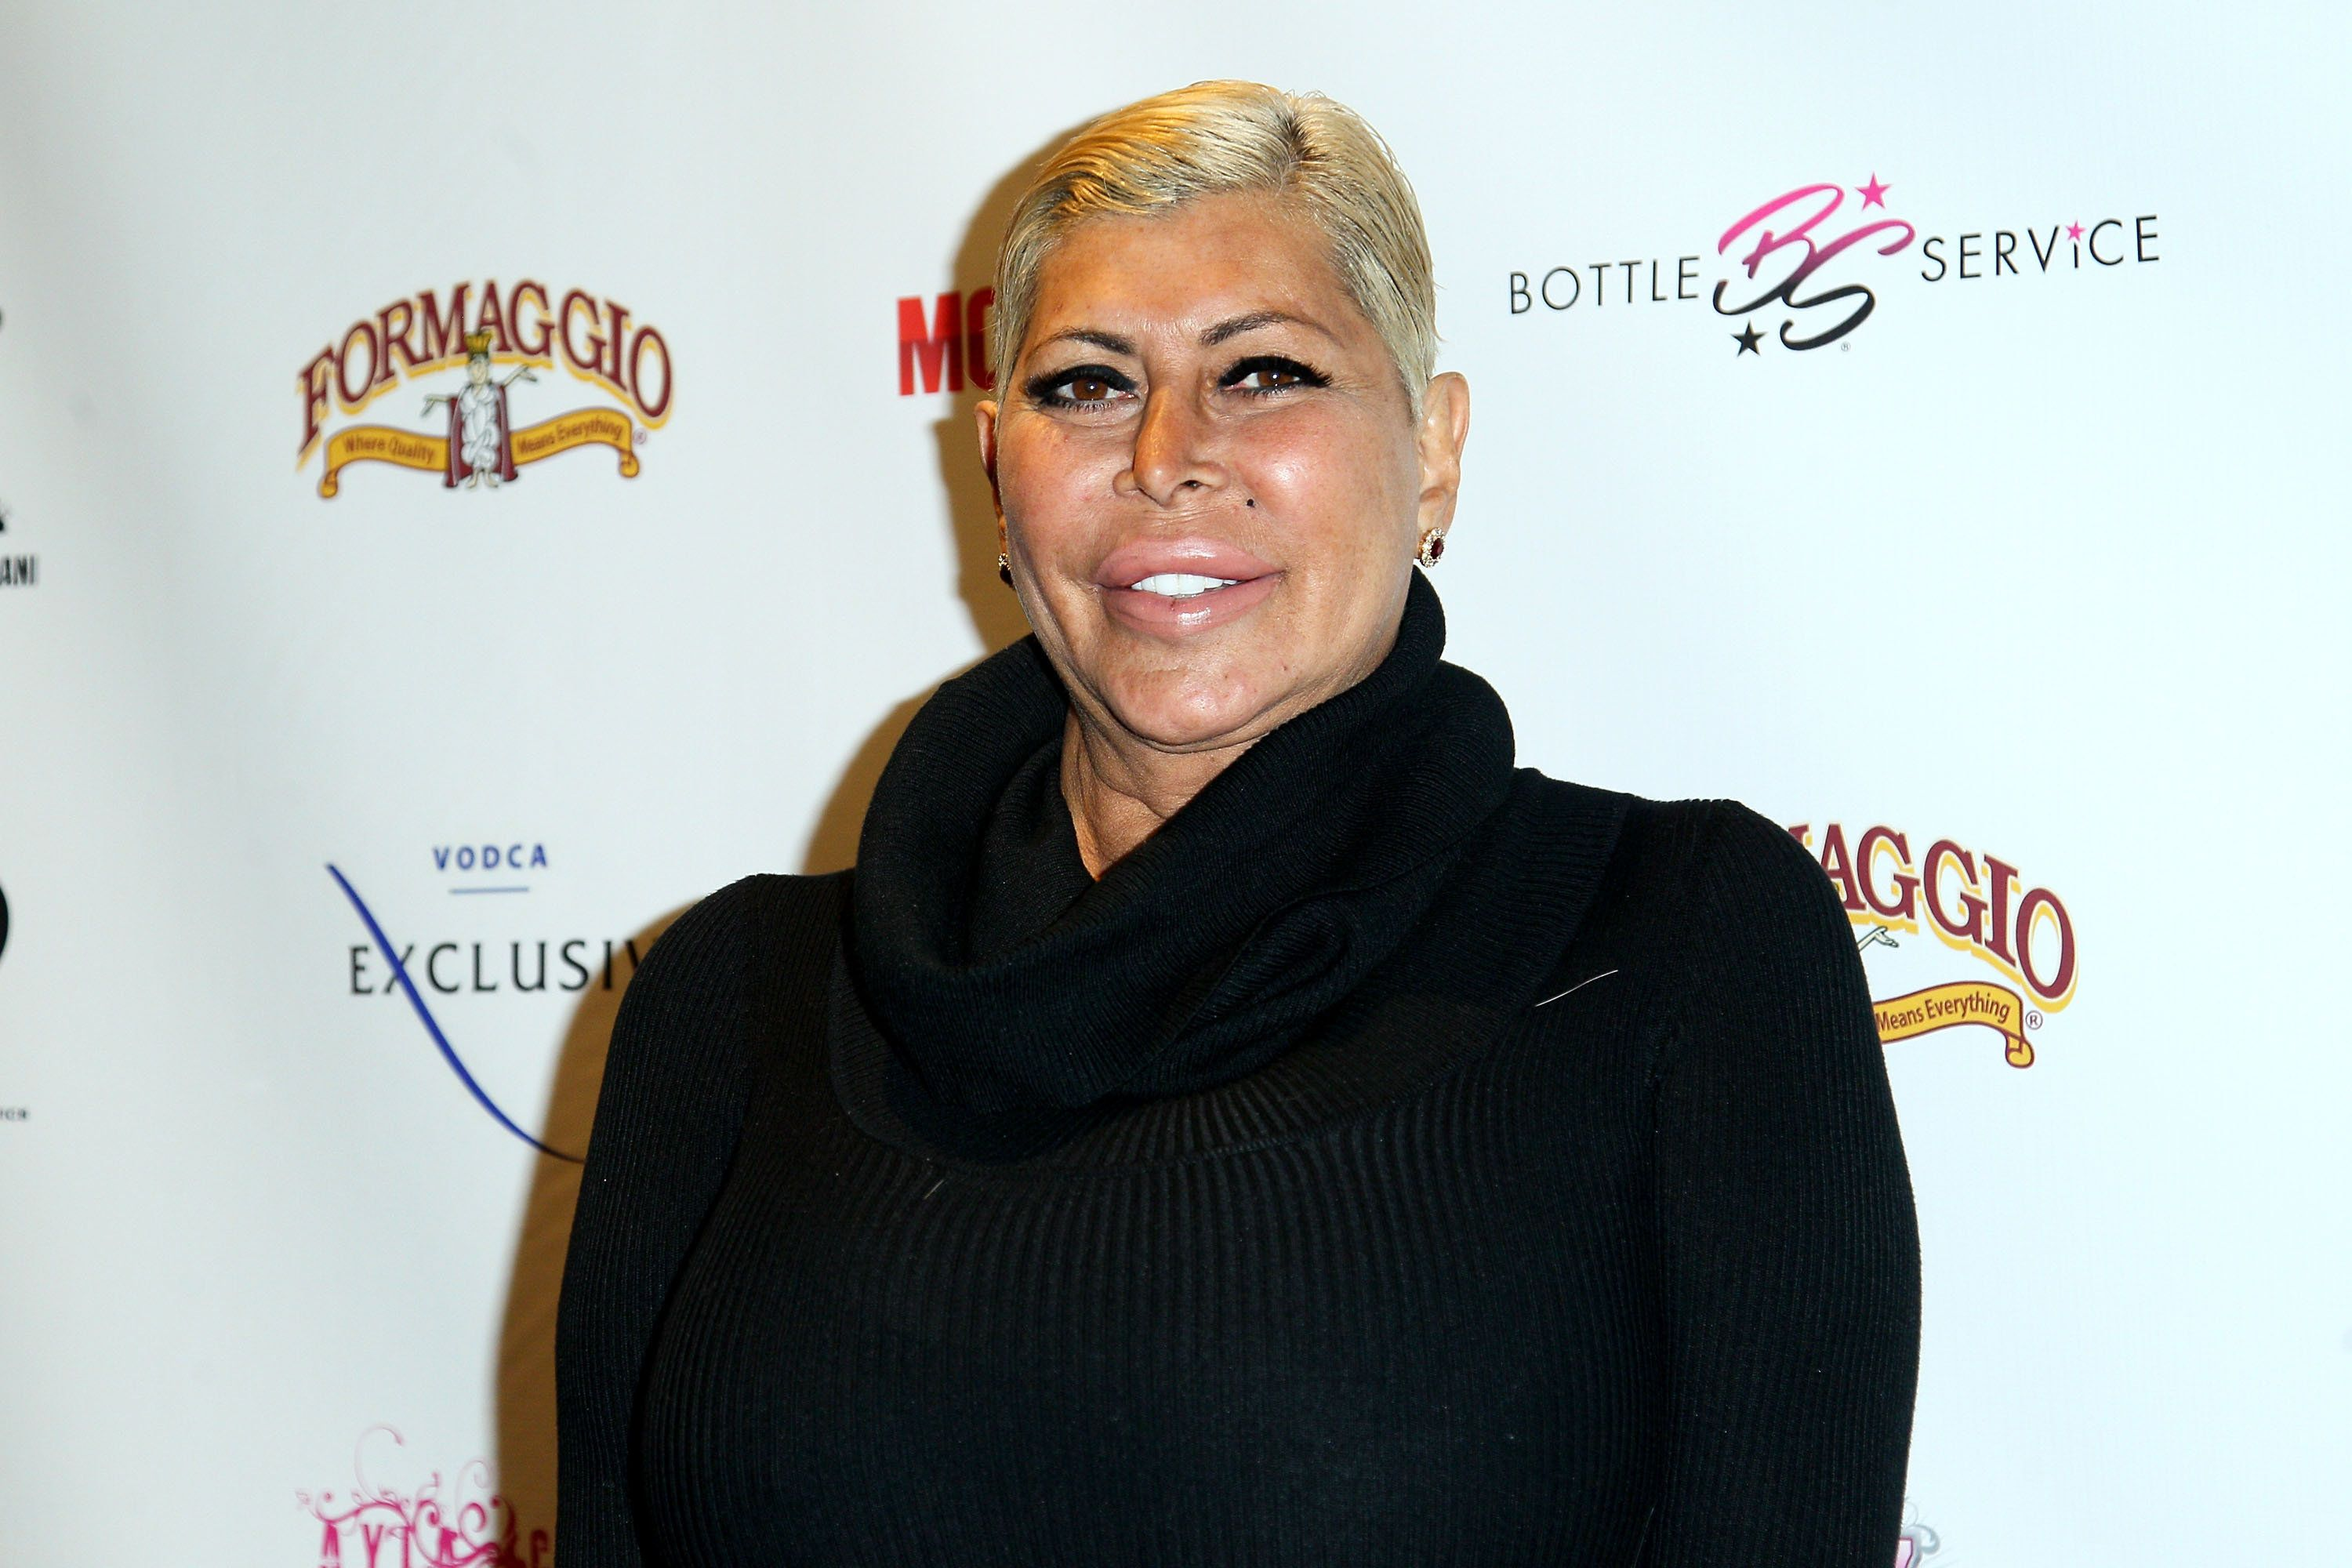 STATEN ISLAND, NY - JANUARY 13:  Big Ang attends Mob Wives 'The Last Stand' Season 6 Viewing Party at Funky Monkey Lounge on January 13, 2016 in Staten Island, New York.  (Photo by Steve Mack/Getty Images)